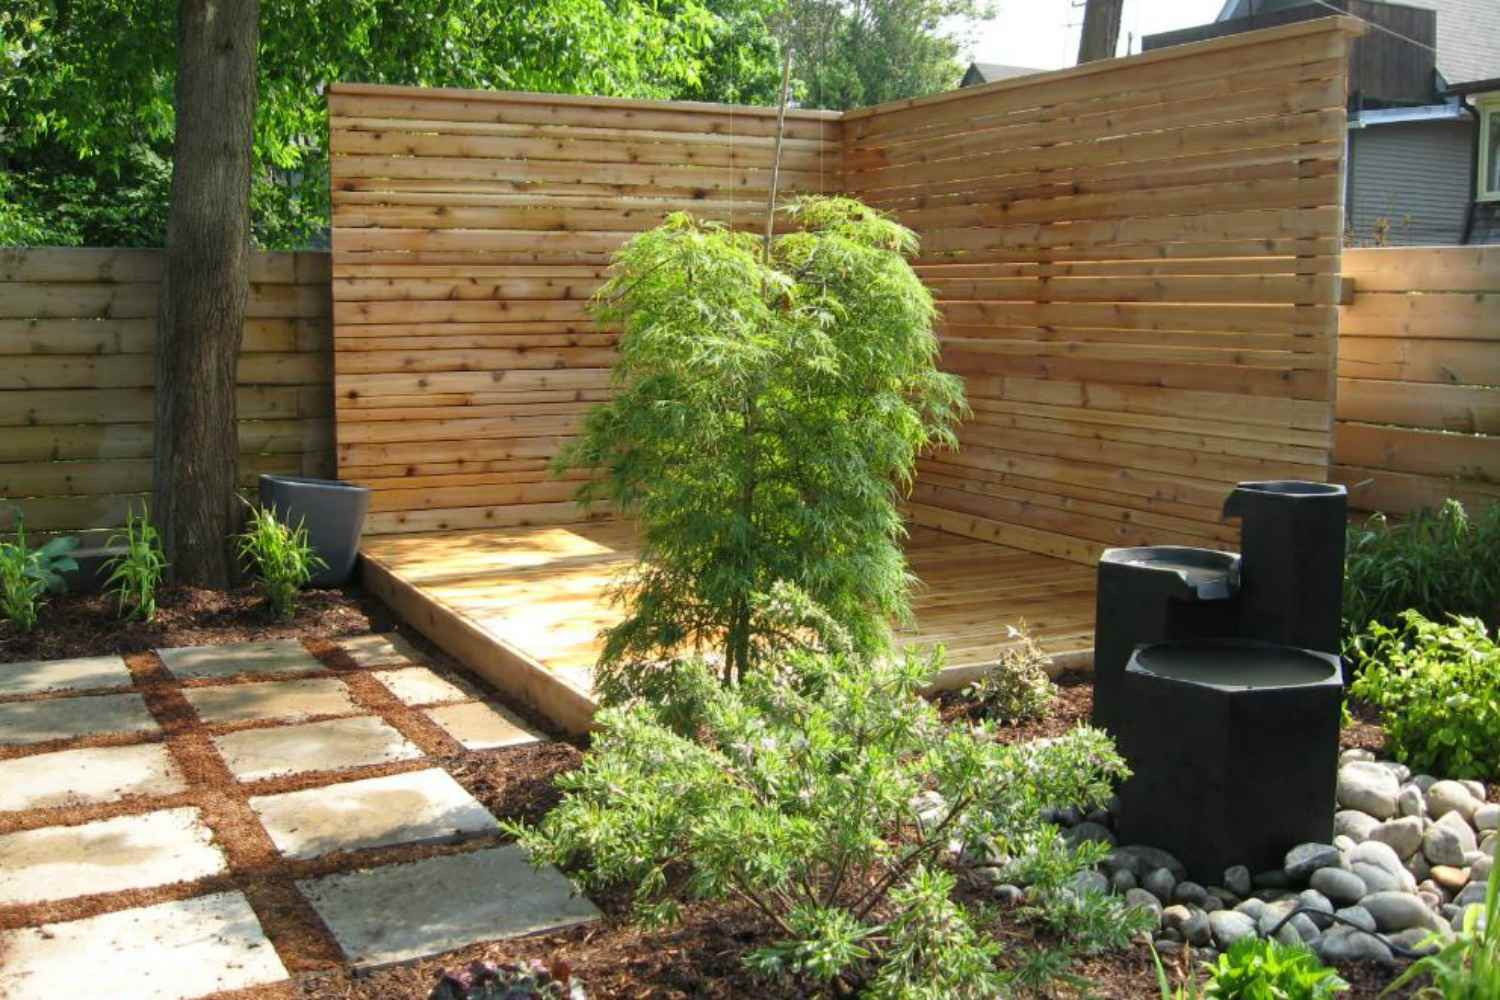 13 Landscaping Ideas For Creating Privacy In Your Yard